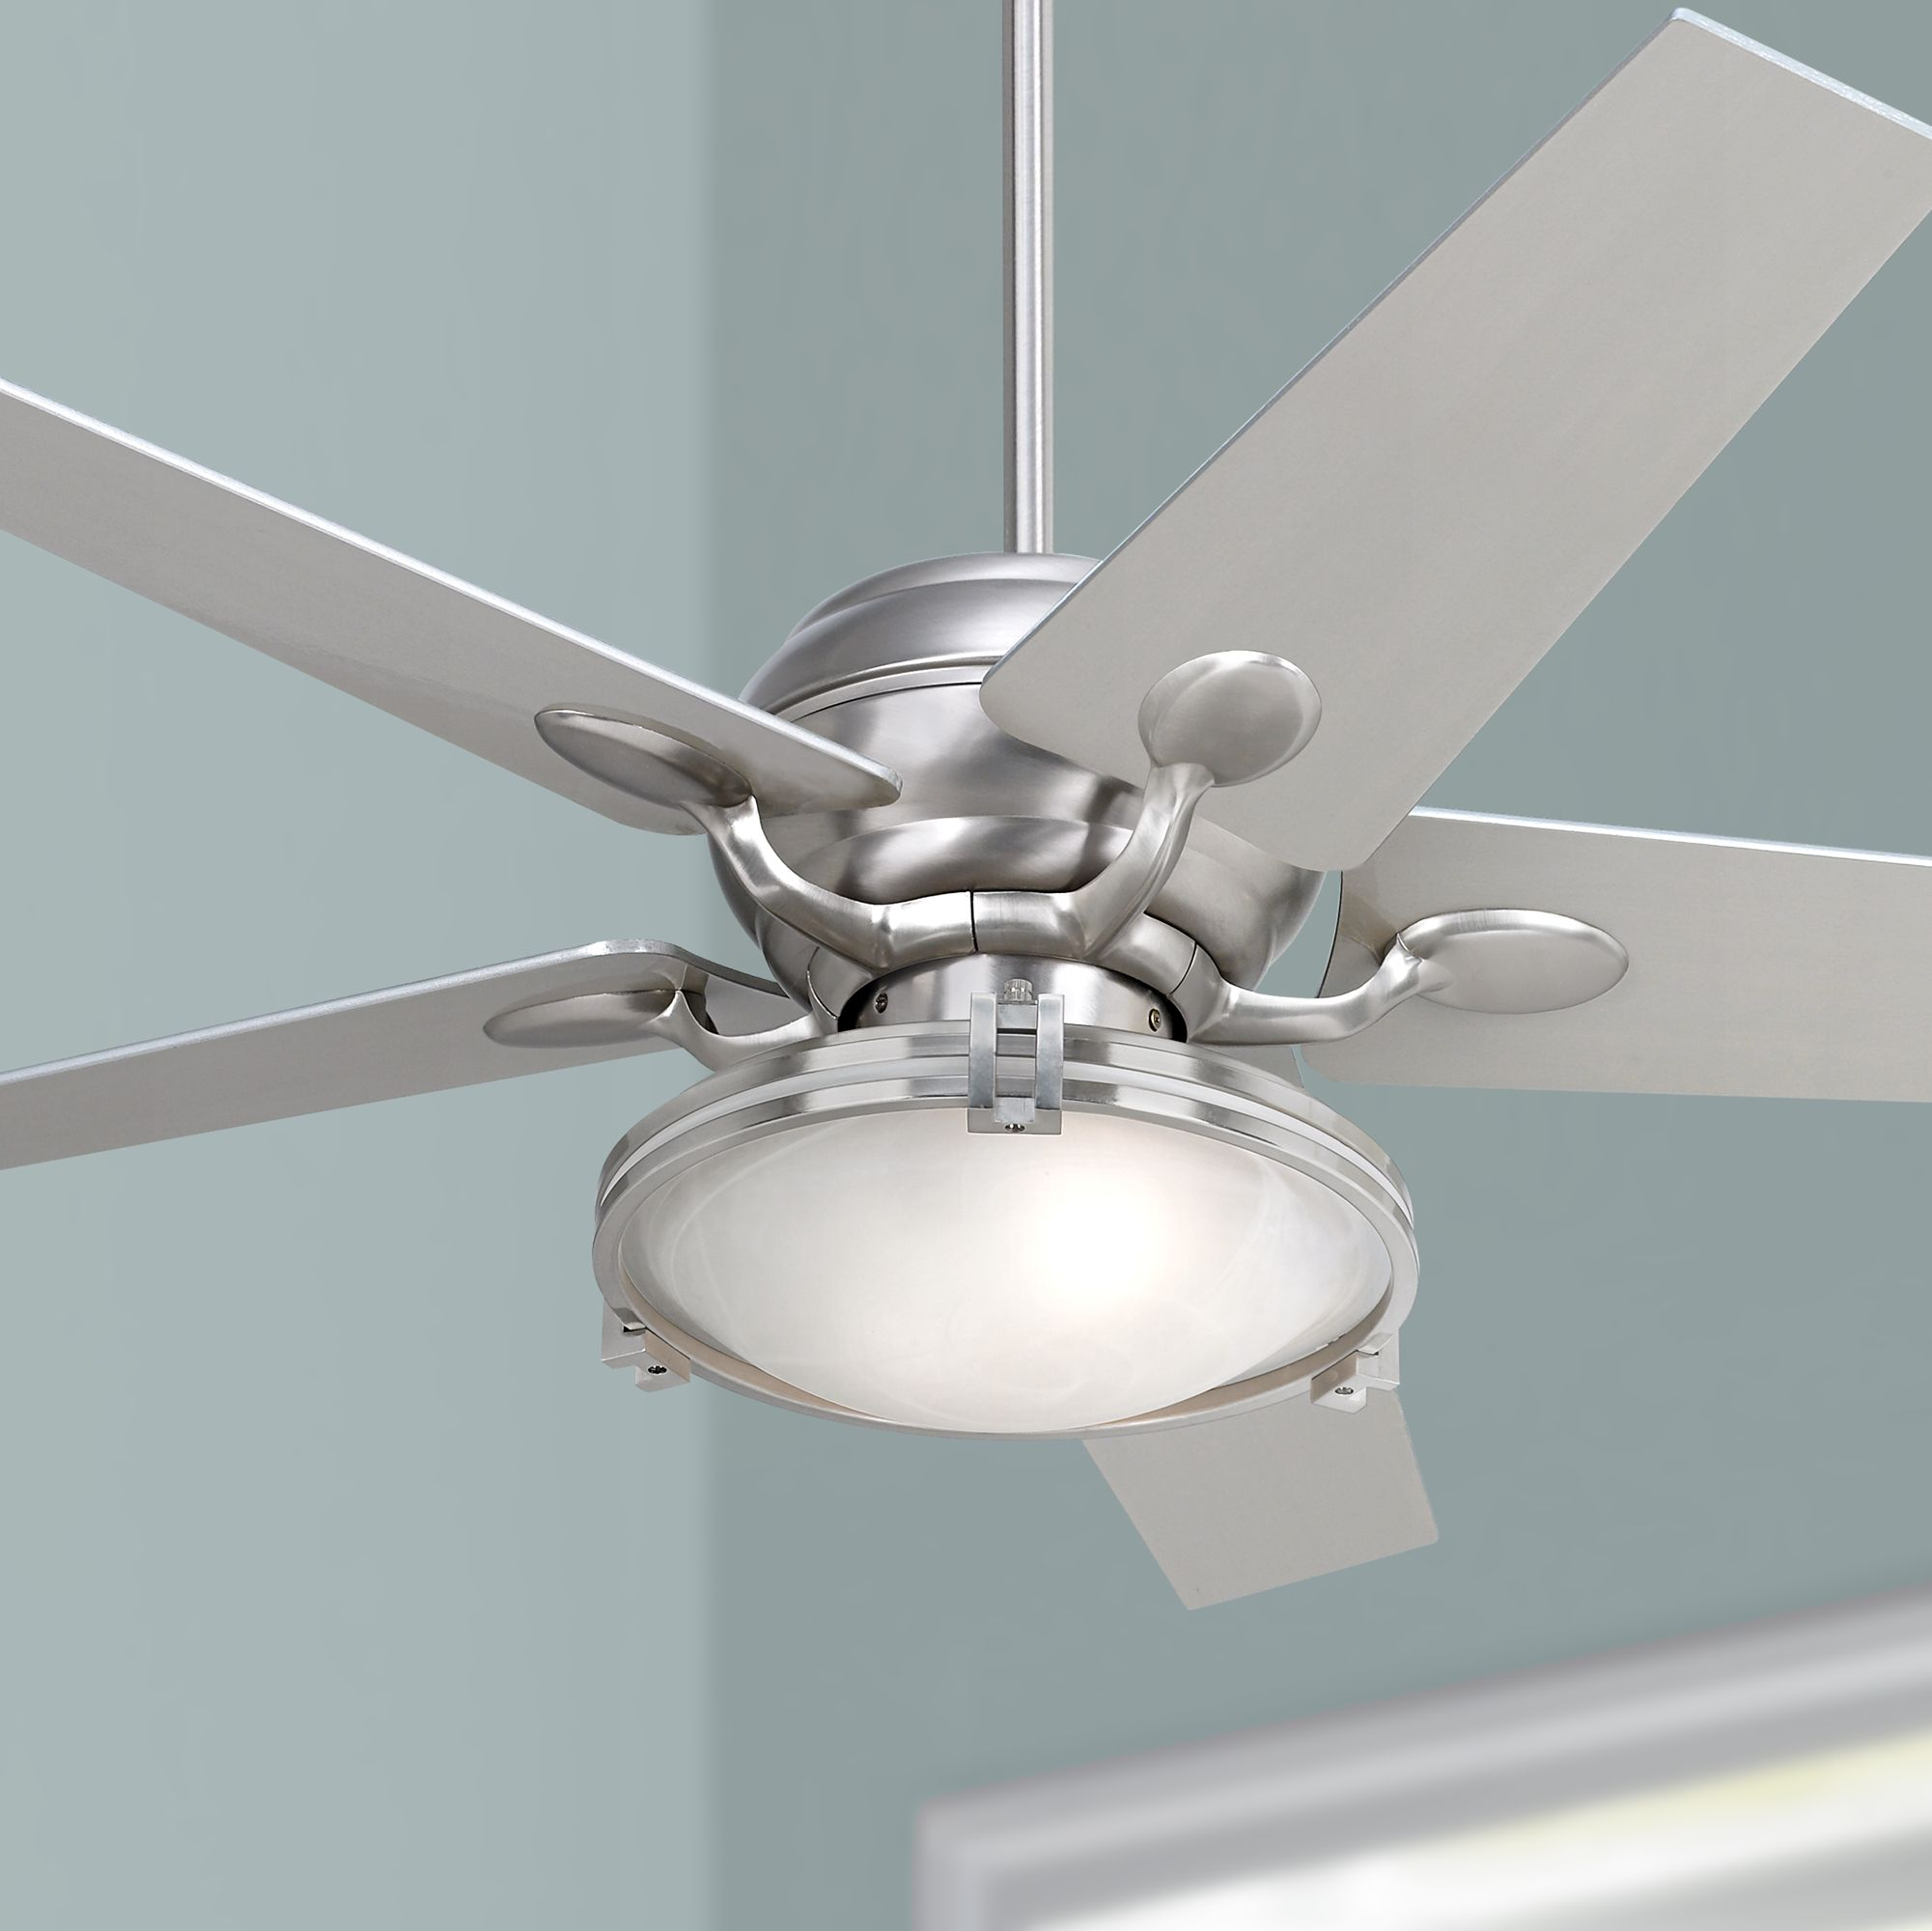 casa optima brushed steel ceiling fan with light kit